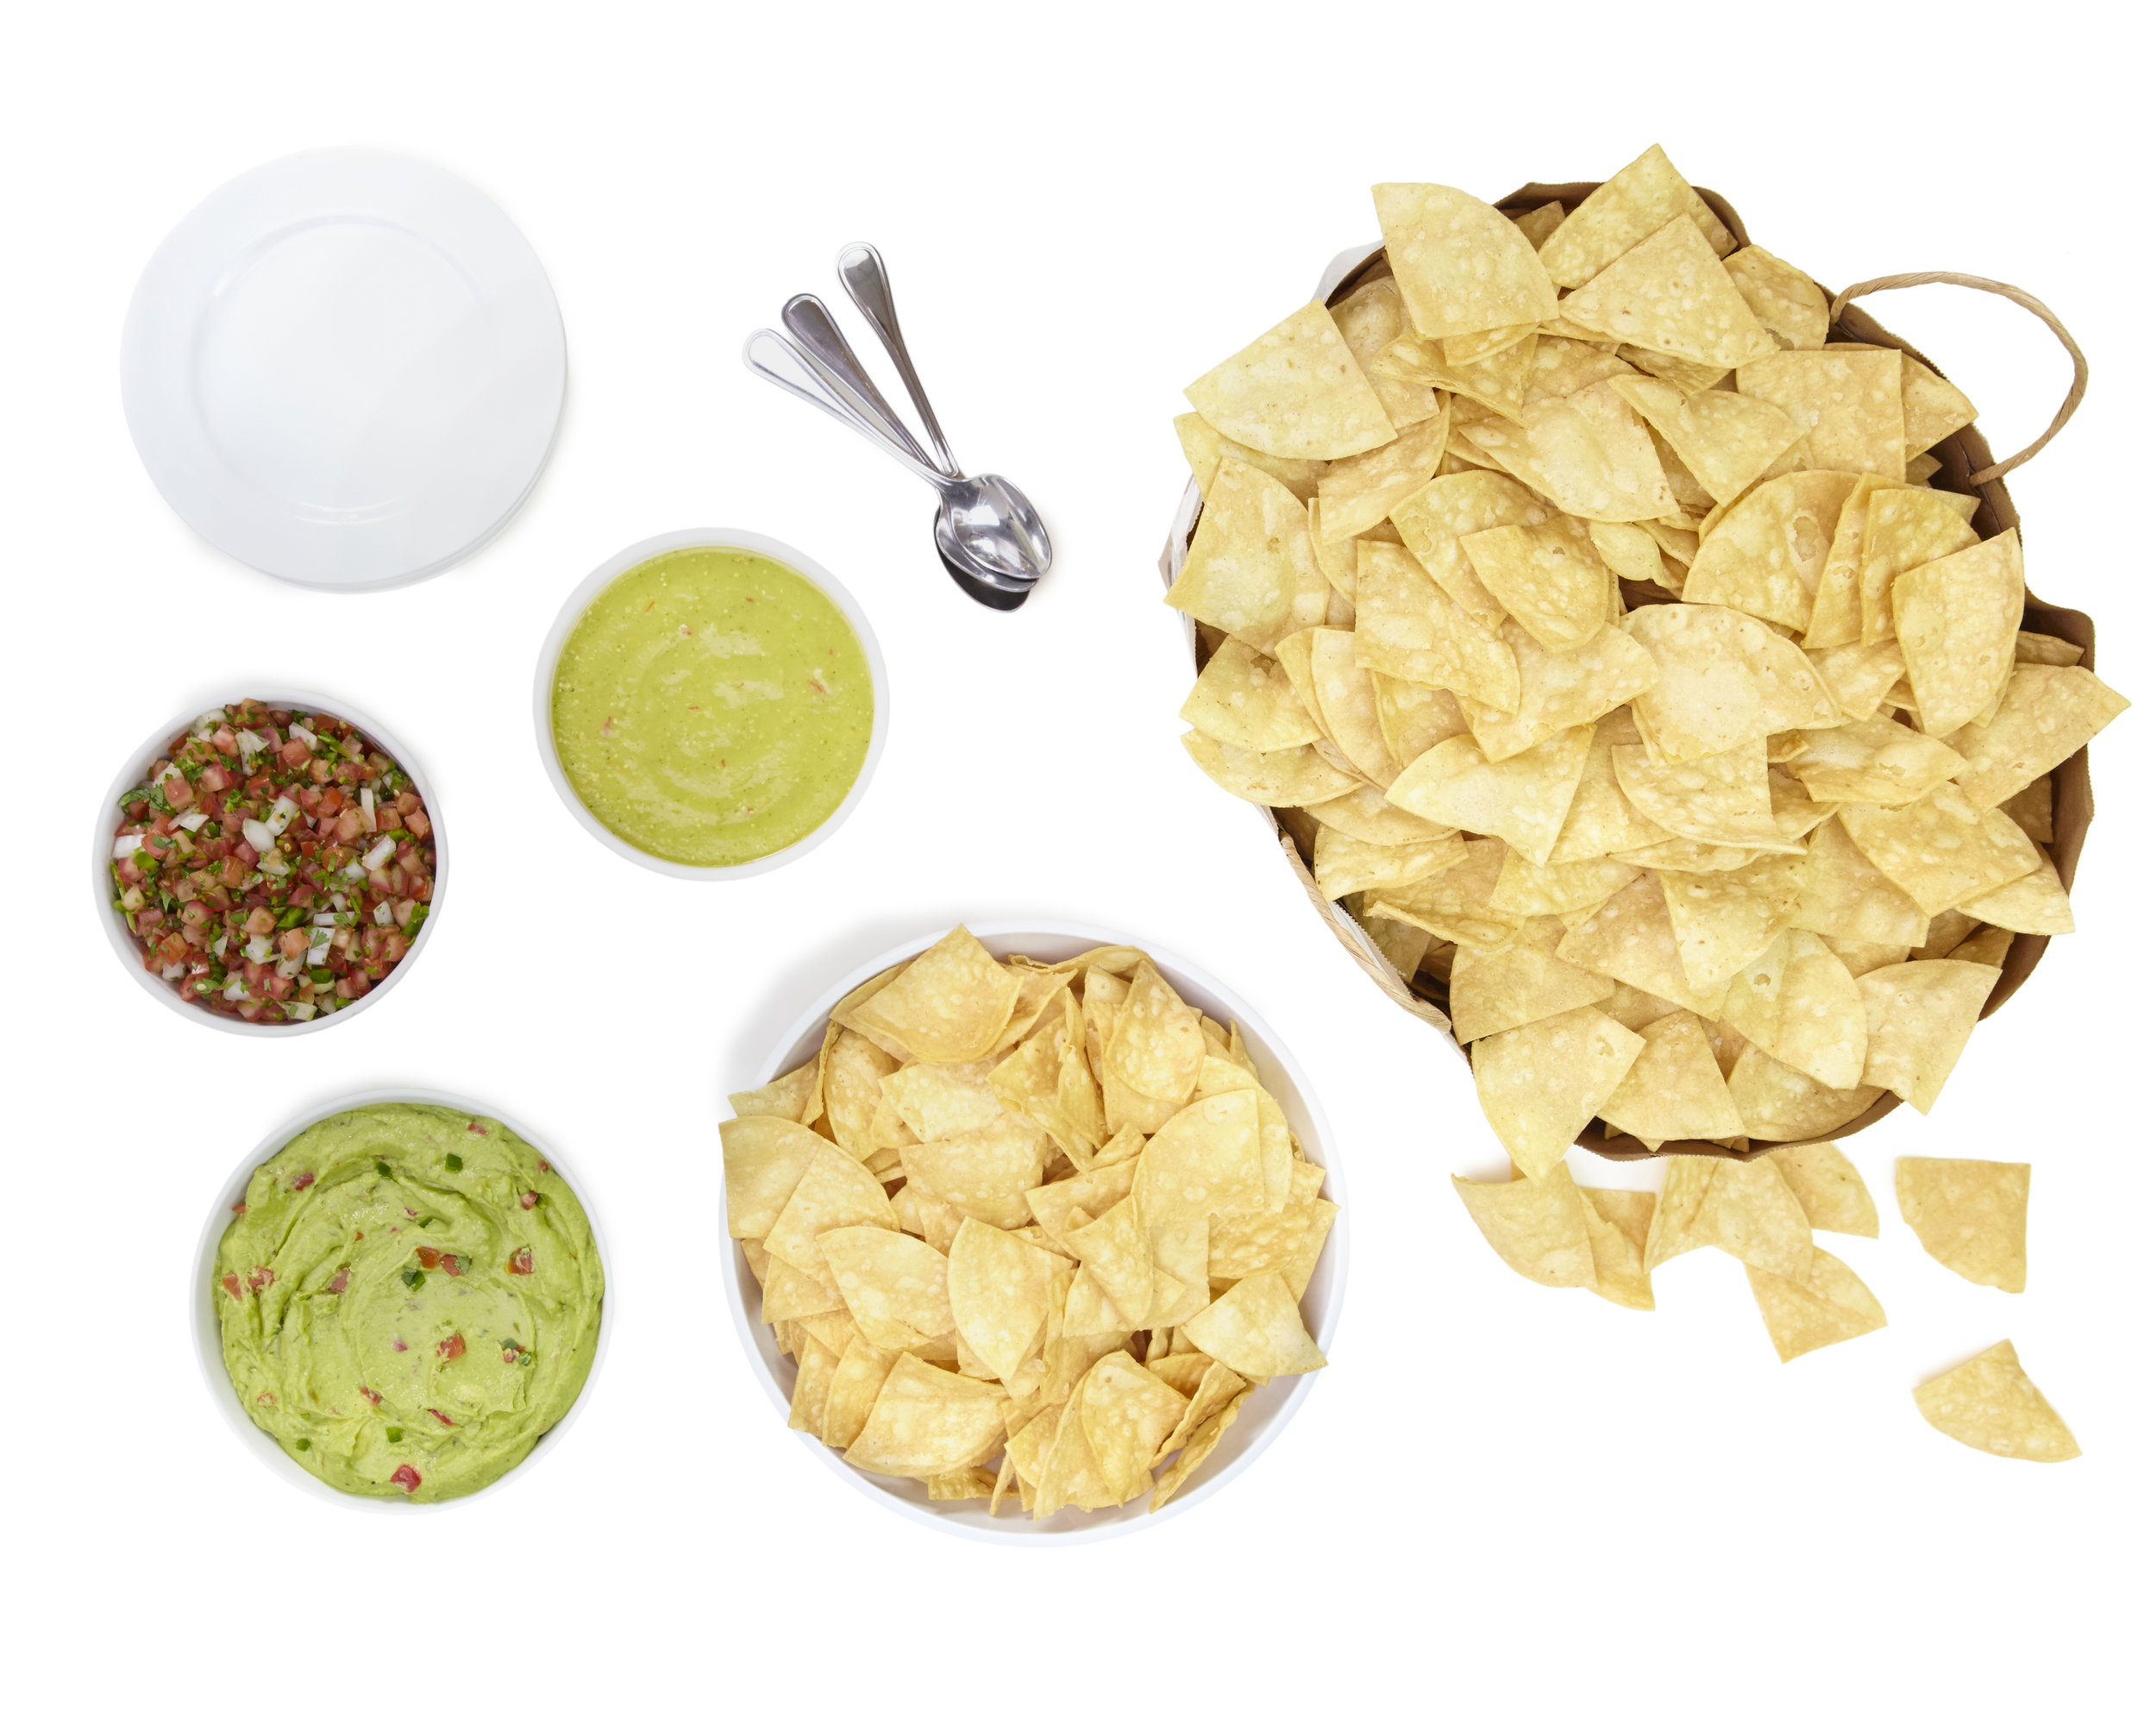 Good for 10 people - Tortilla chips, pico de gallo, and our house salsa, add guacamole if you like.